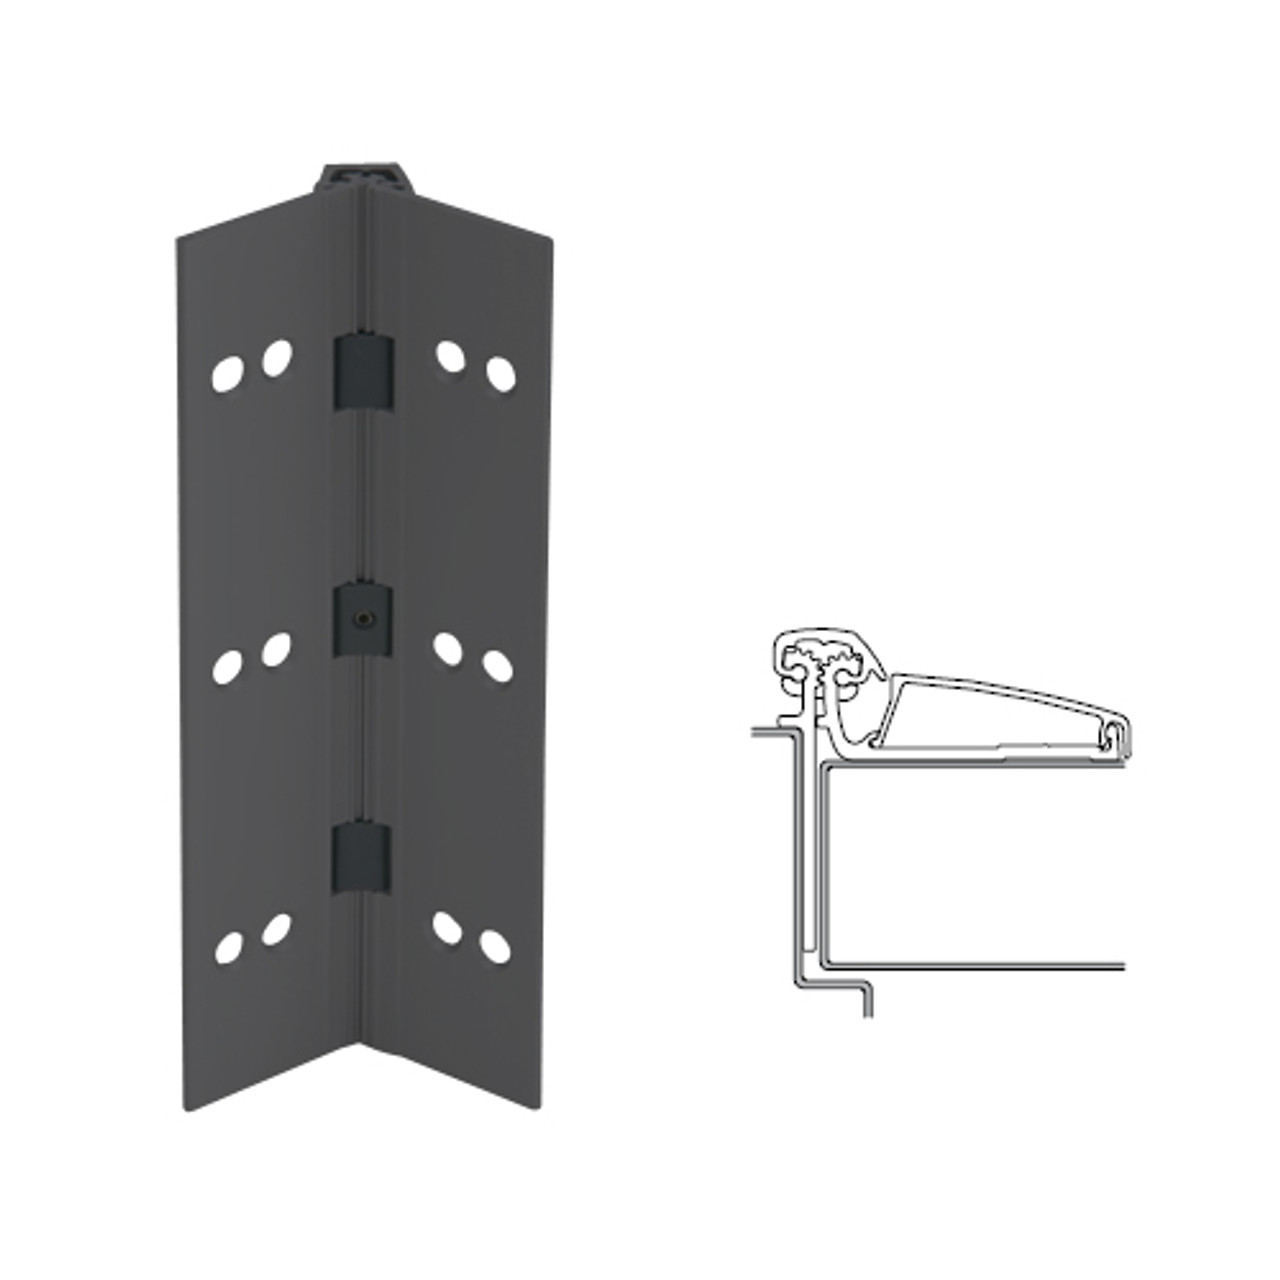 046XY-315AN-83-SECWDHM IVES Adjustable Half Surface Continuous Geared Hinges with Security Screws - Hex Pin Drive in Anodized Black